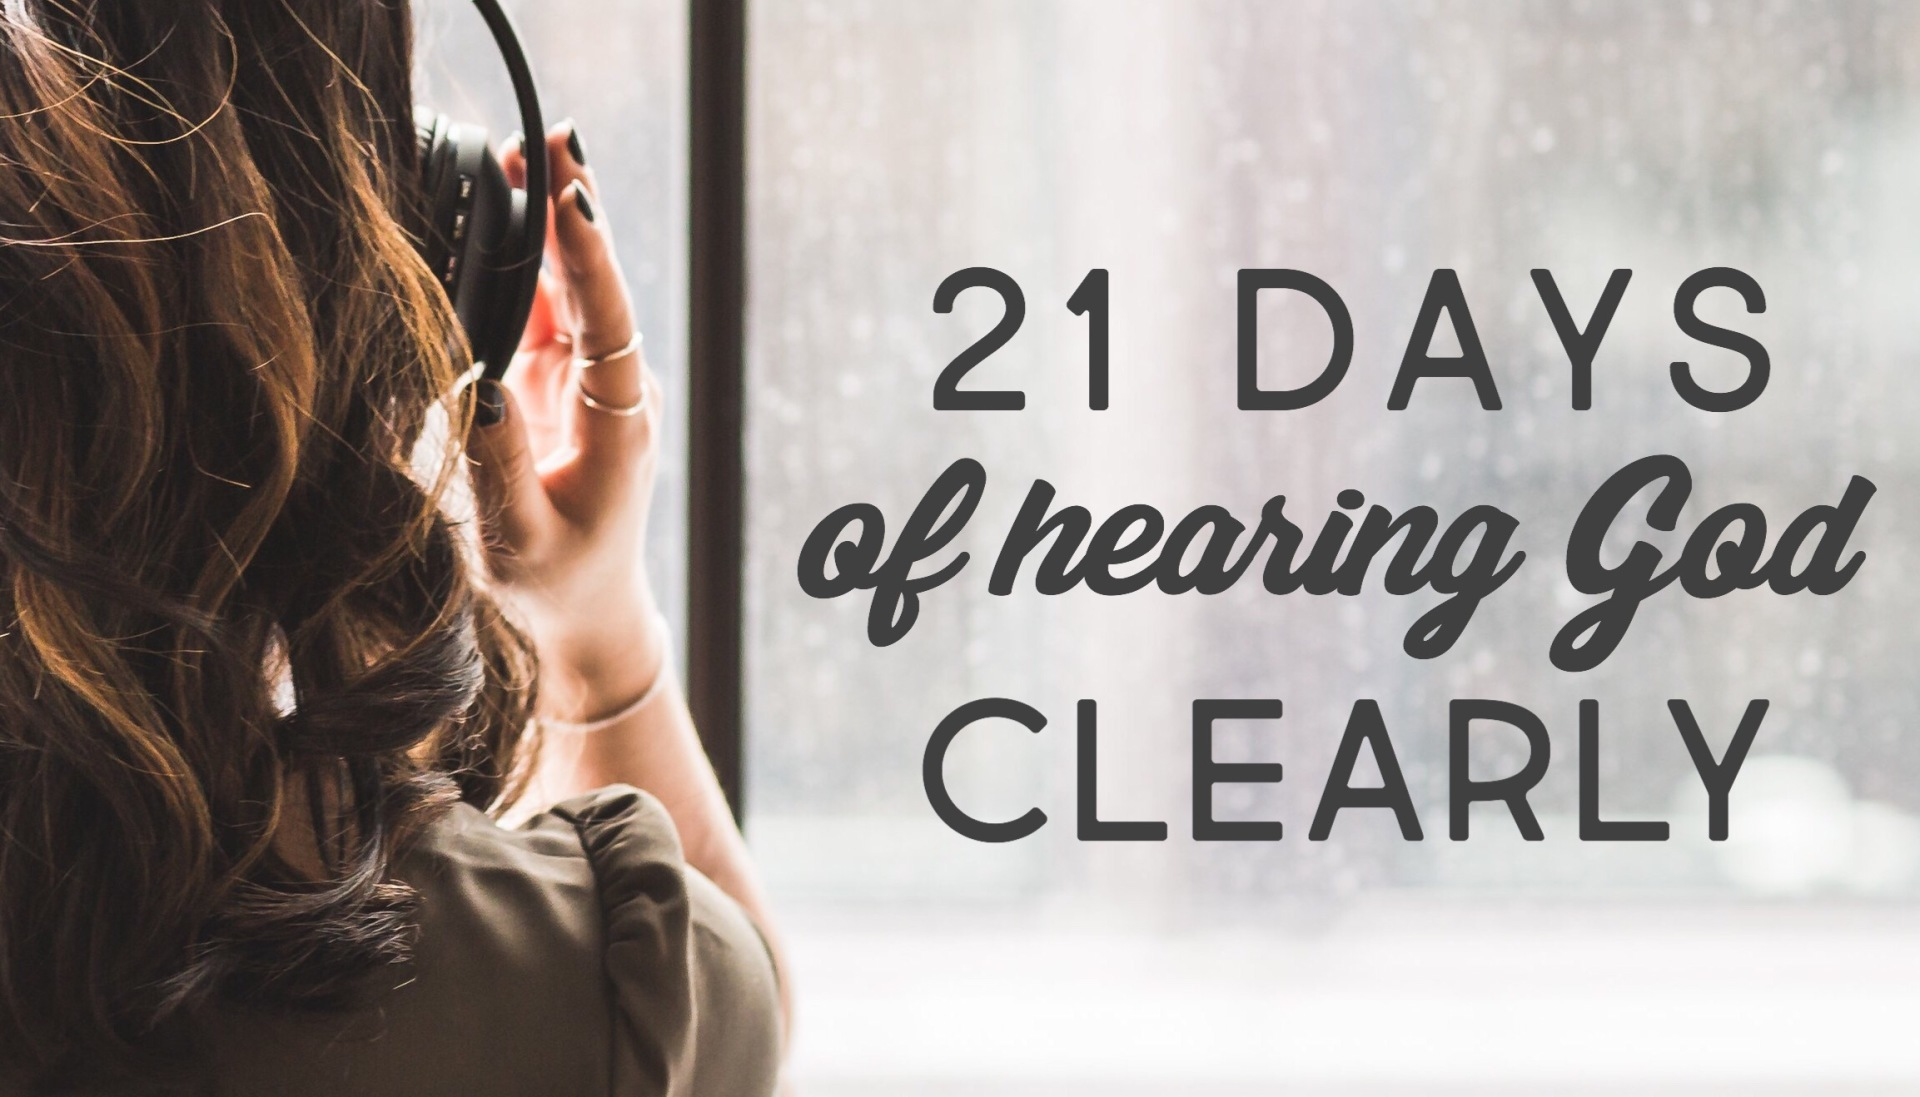 21 Days Of Hearing God Clearly